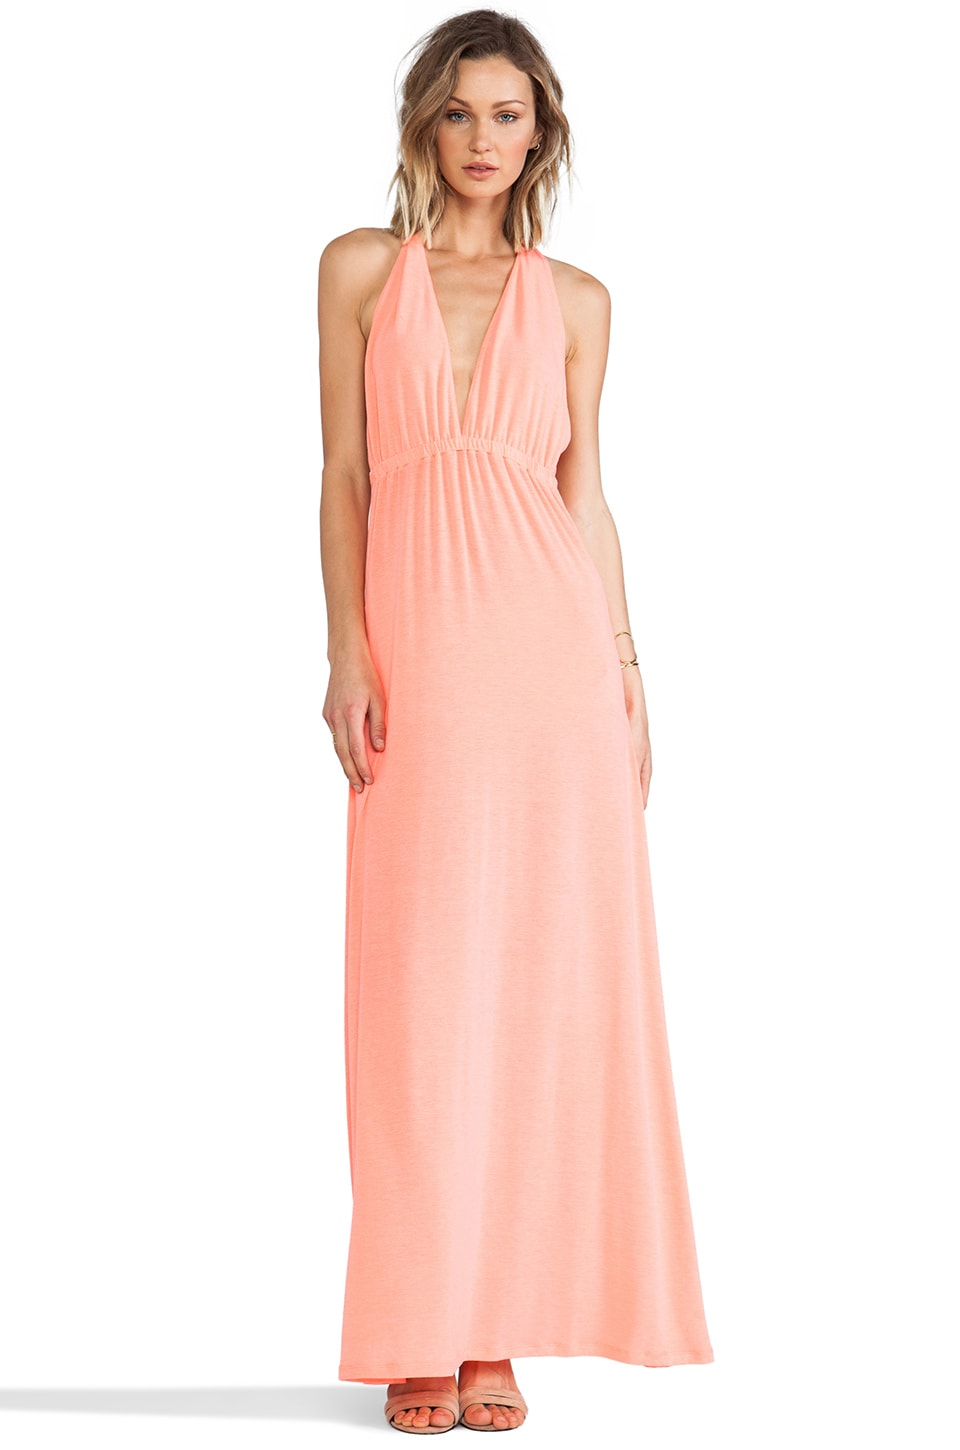 Lovers + Friends Tristan Maxi Dress in Neon Pink